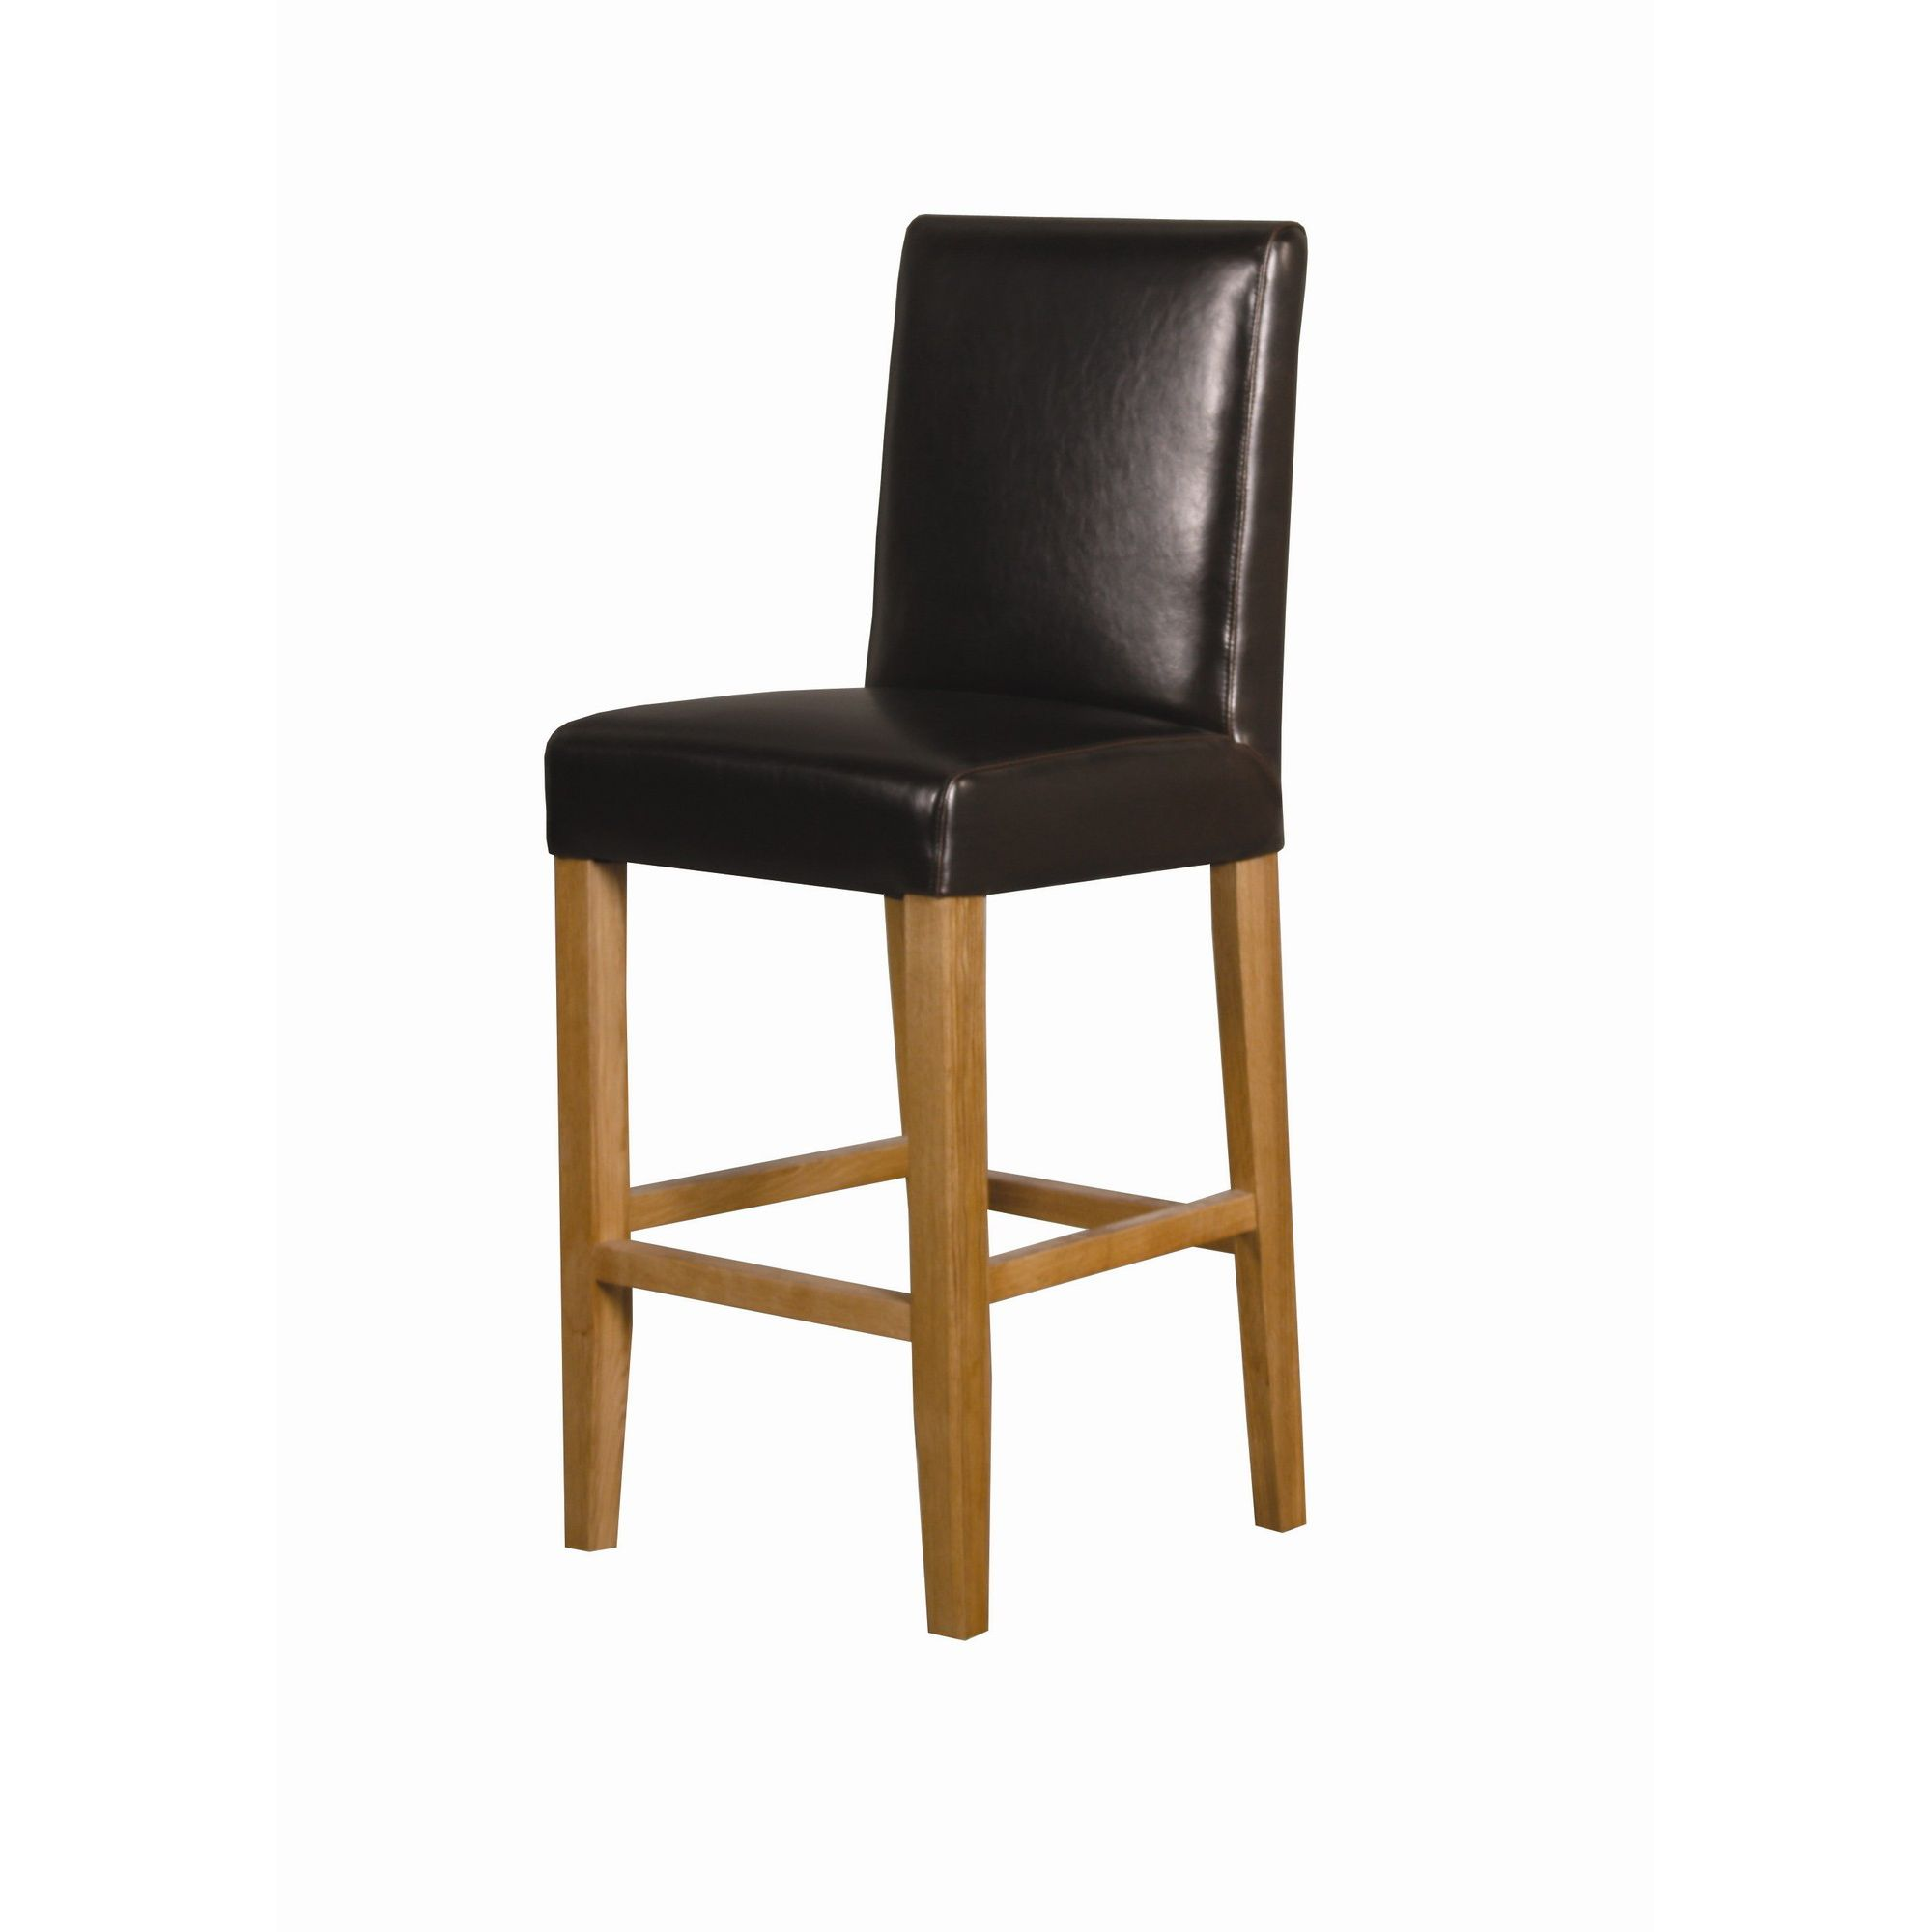 Furniture Link Tony Bar Chair in Brown Leather / Oak (Set of 2) at Tesco Direct